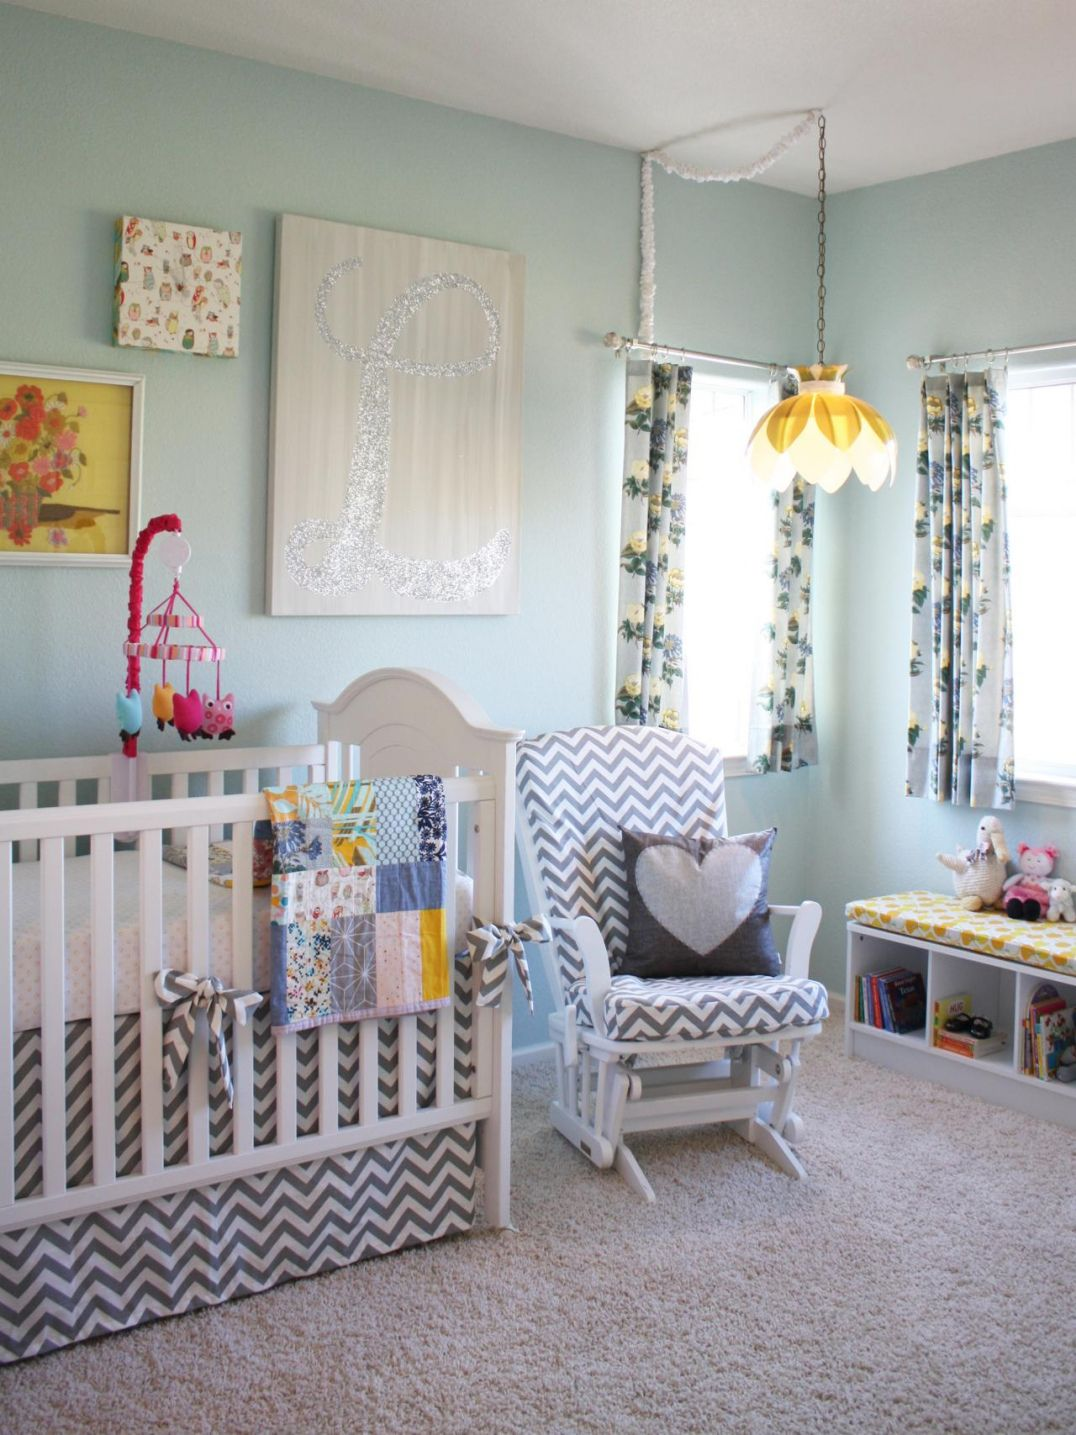 2019 Baby Room Lighting Ideas Best Office Furniture Check More At Http